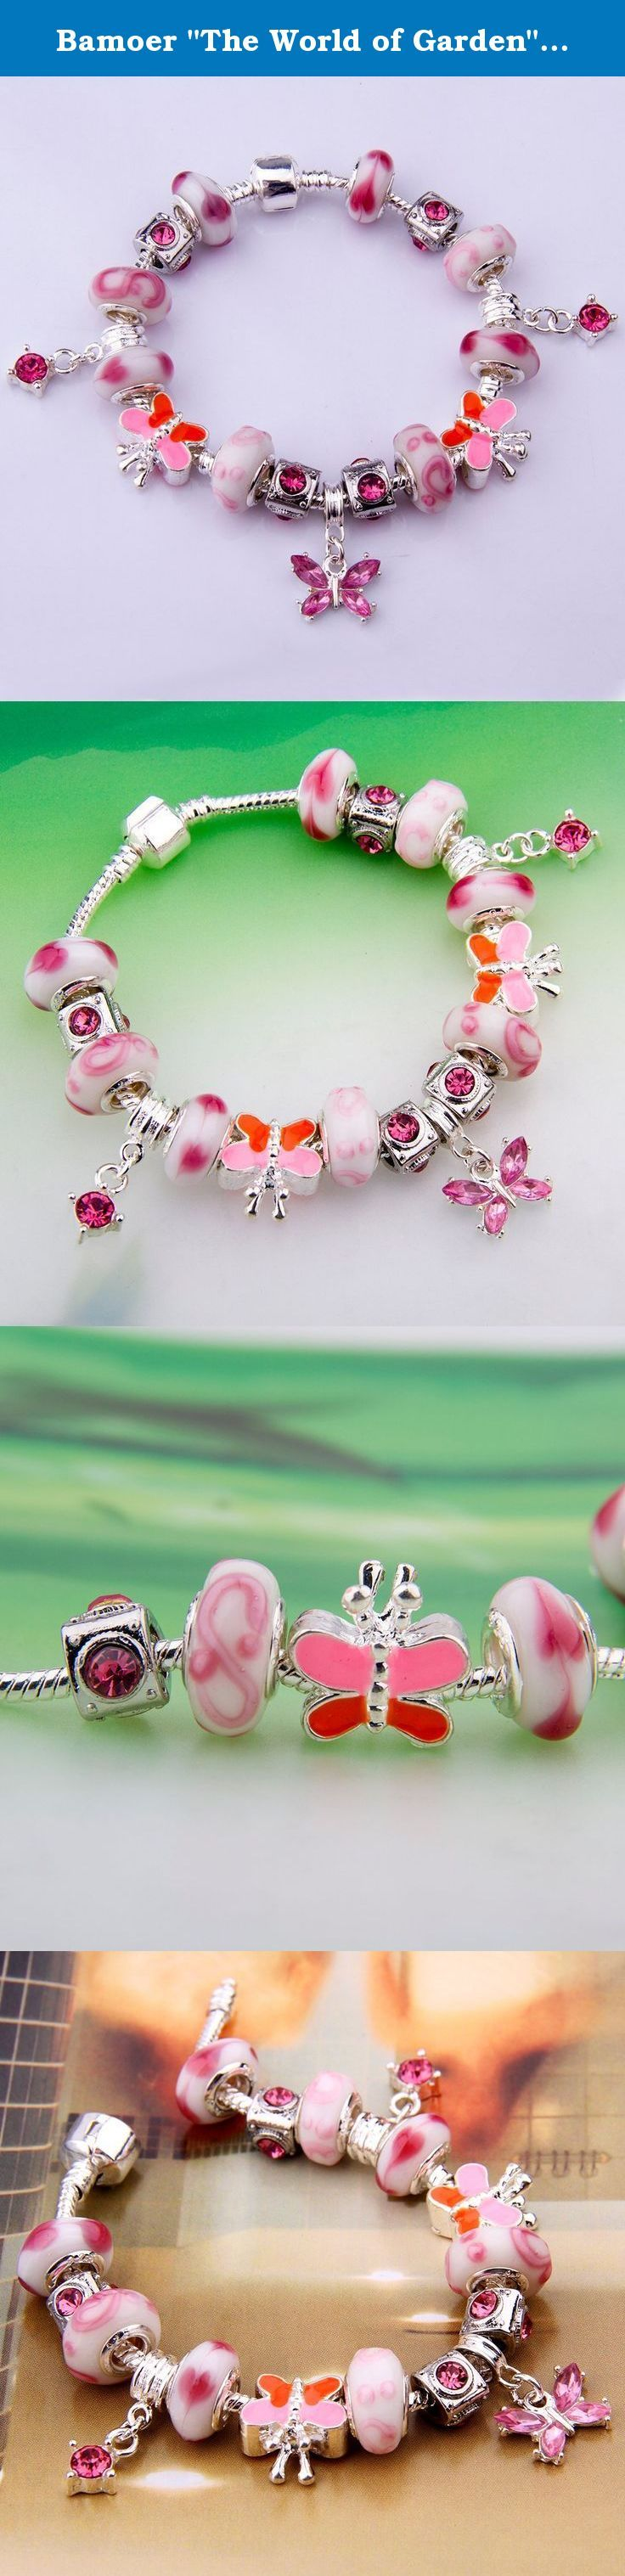 """Bamoer """"The World of Garden"""" Pink Murano Glass Beads Butterfly Dangle Charm Beaded Silver Plated Bracelet Valentine's Day Gifts for Ladies Girls Women 20cm. Brand History: Bamoer is a vibrant, young, and modern brand. With over 4 Years of international trading Bamoer offer the hot sale items for our best customer and reasonable price Gorgeous pink murano glass bead European style bracelet has dangling pink butterflies and a white crystal heart. Beautiful murano inspired pink glass beads…"""